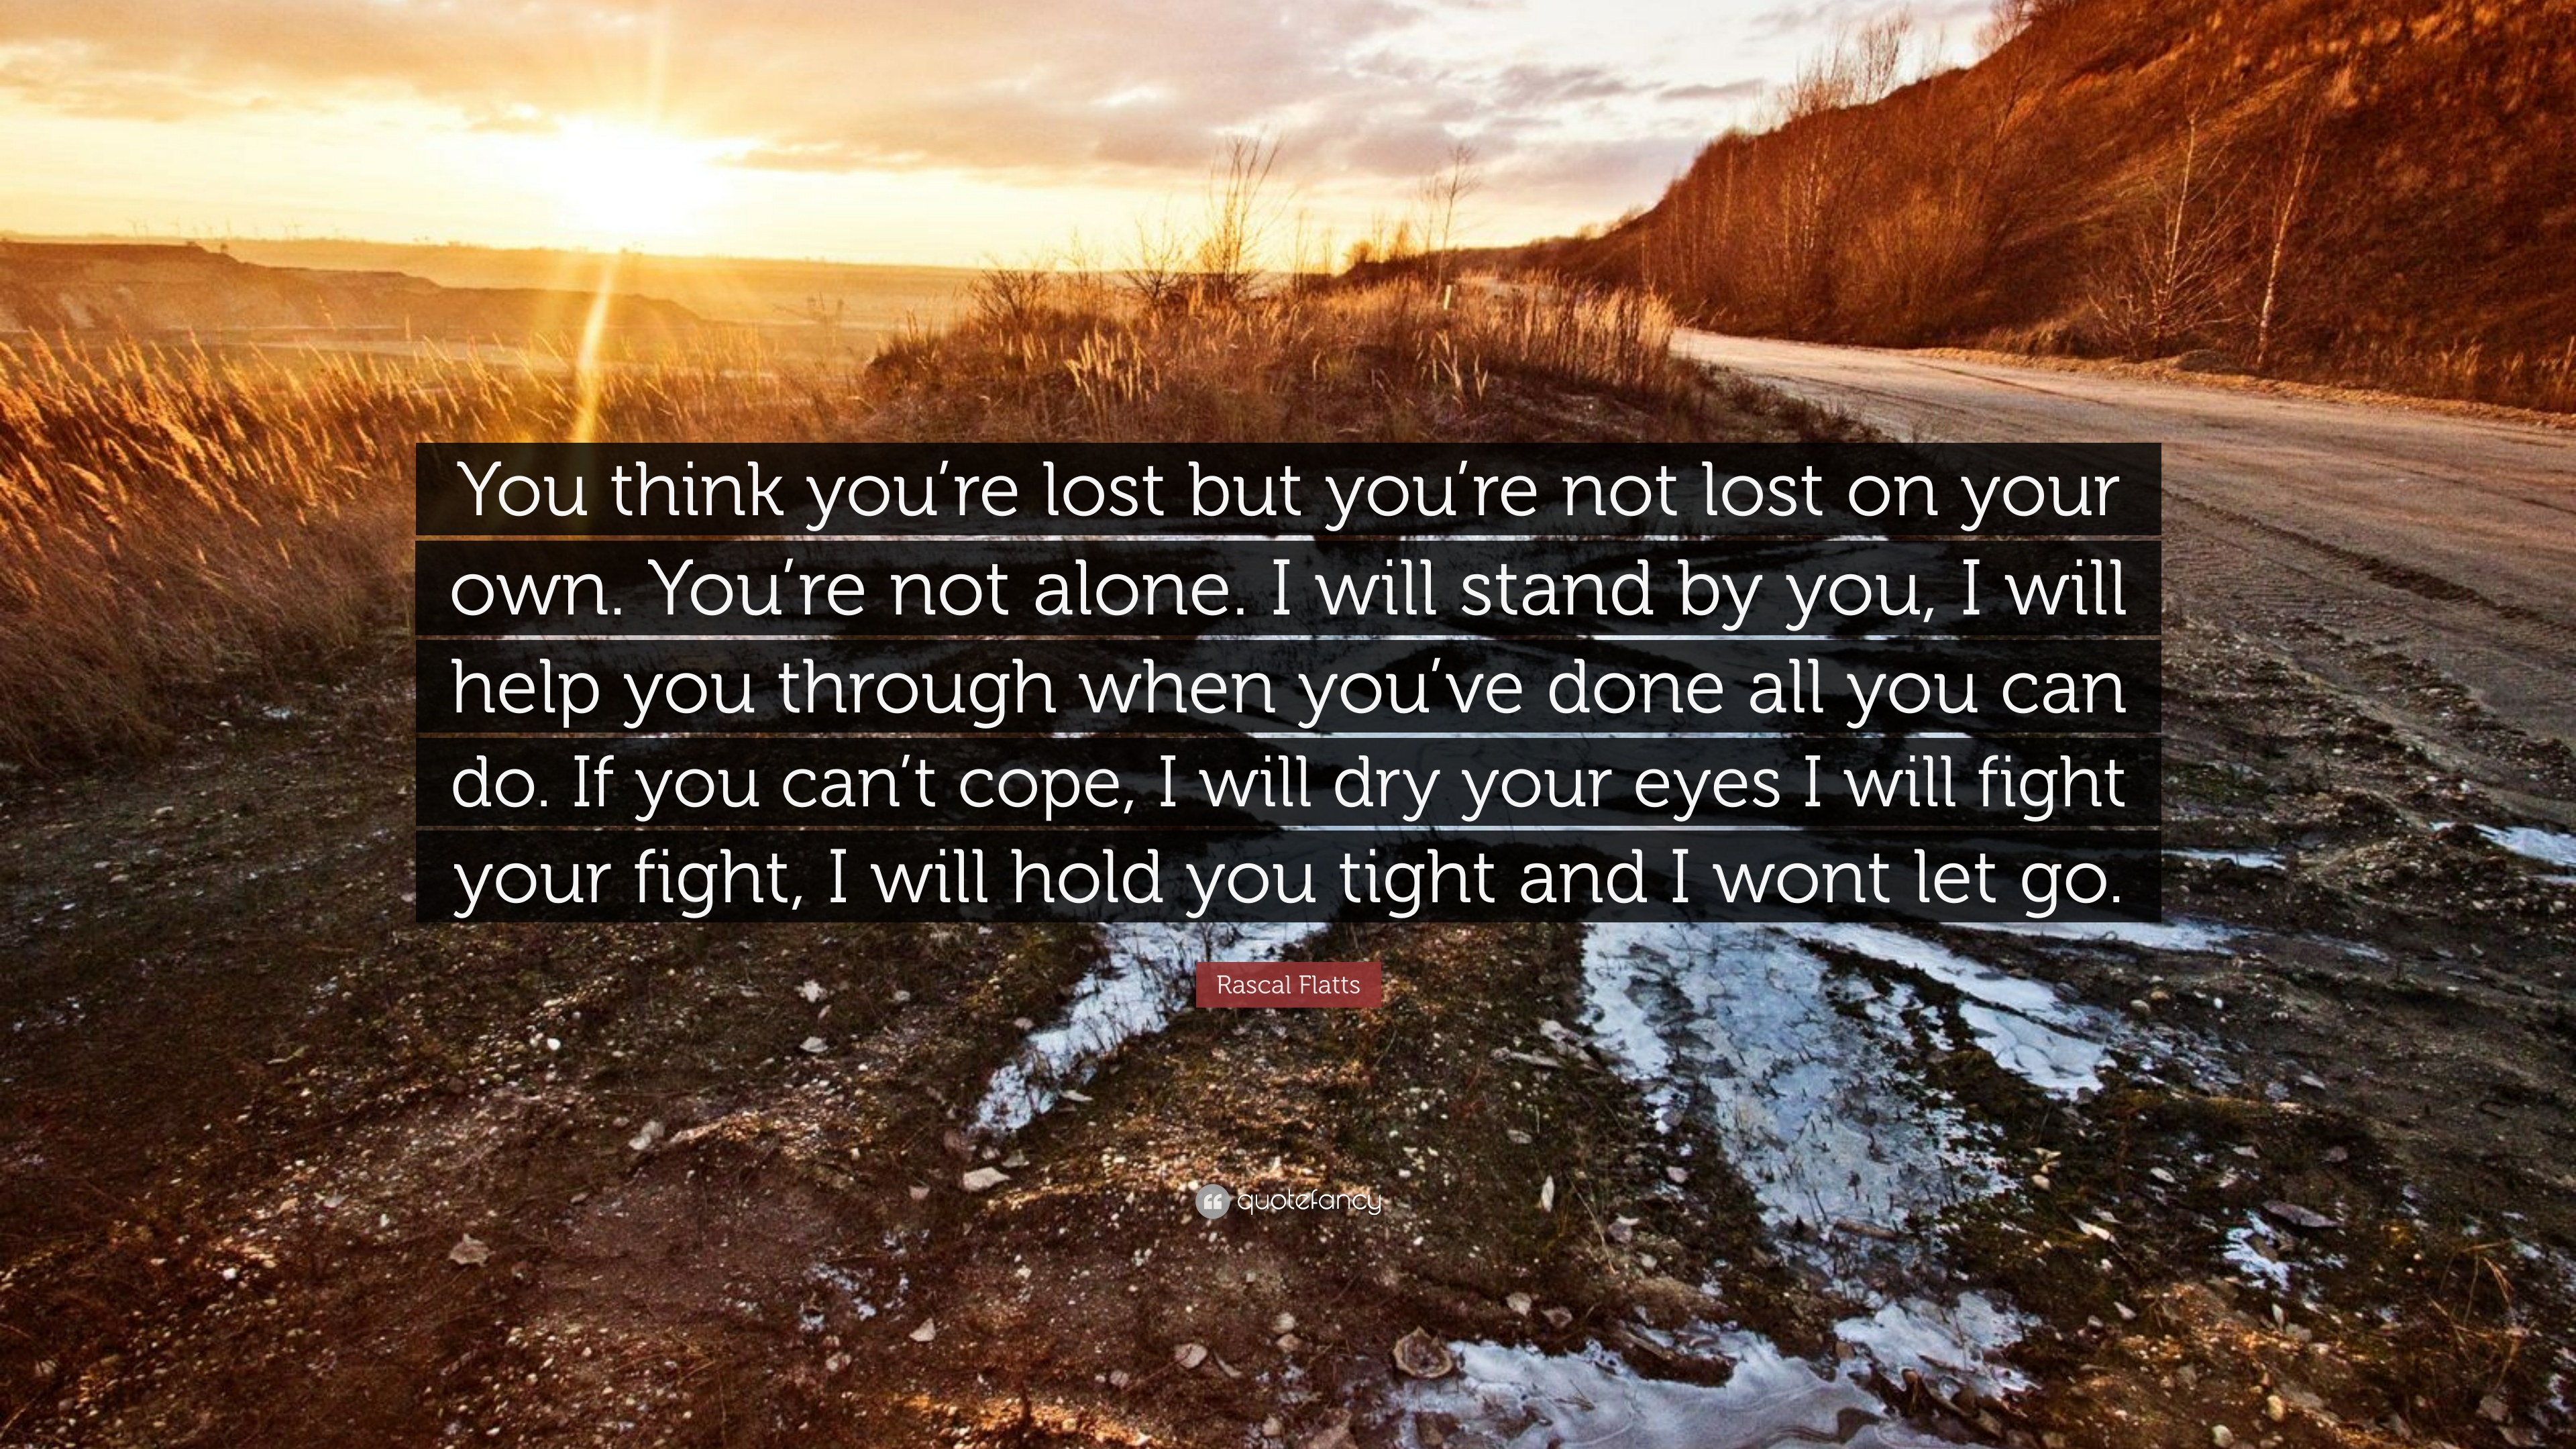 Rascal Flatts Quote You Think You Re Lost But You Re Not Lost On